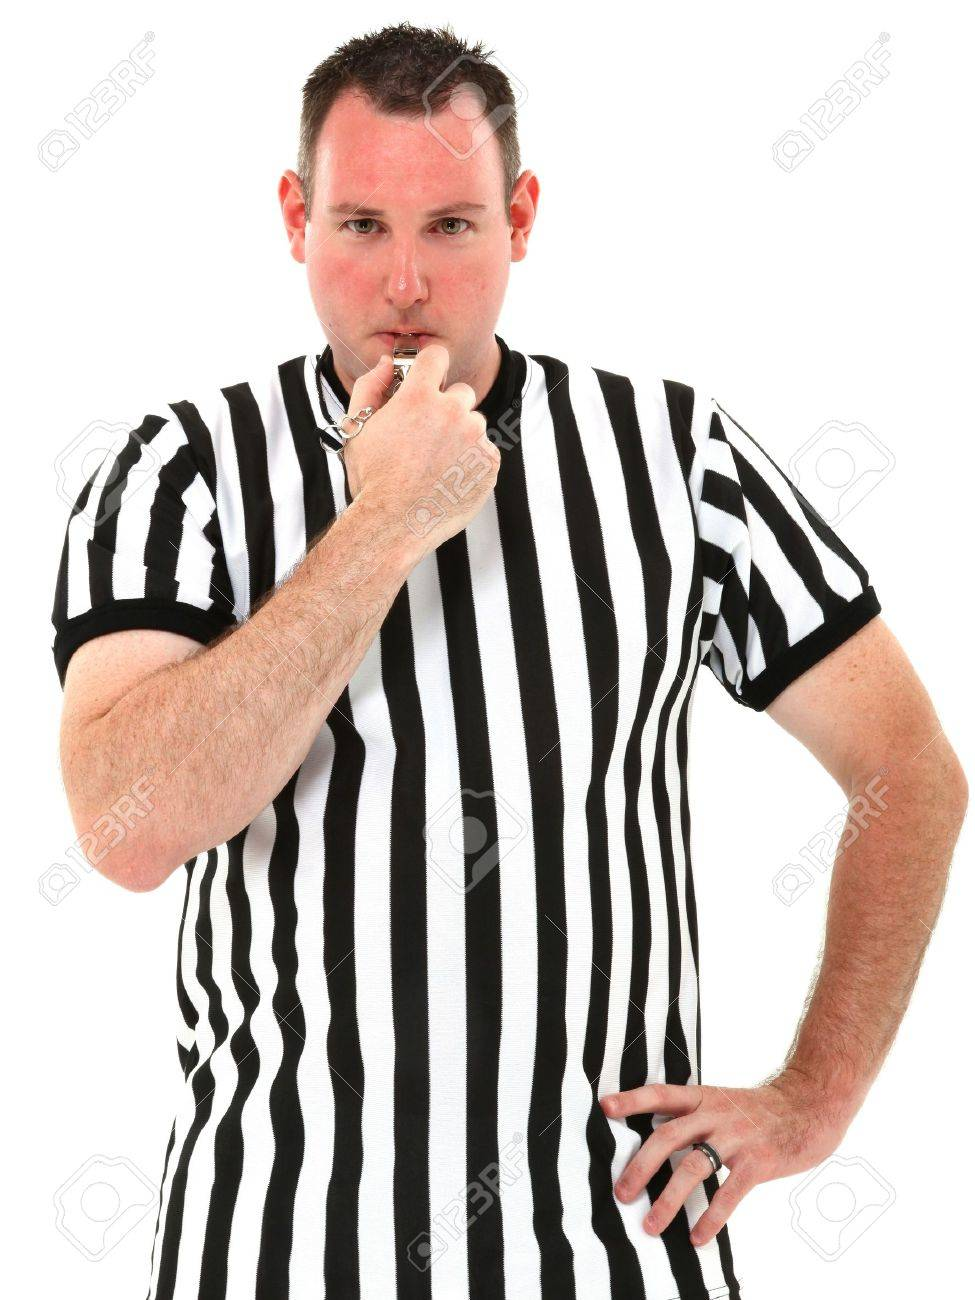 Attractive thirties referee blowing whistle over white background. - 9976798